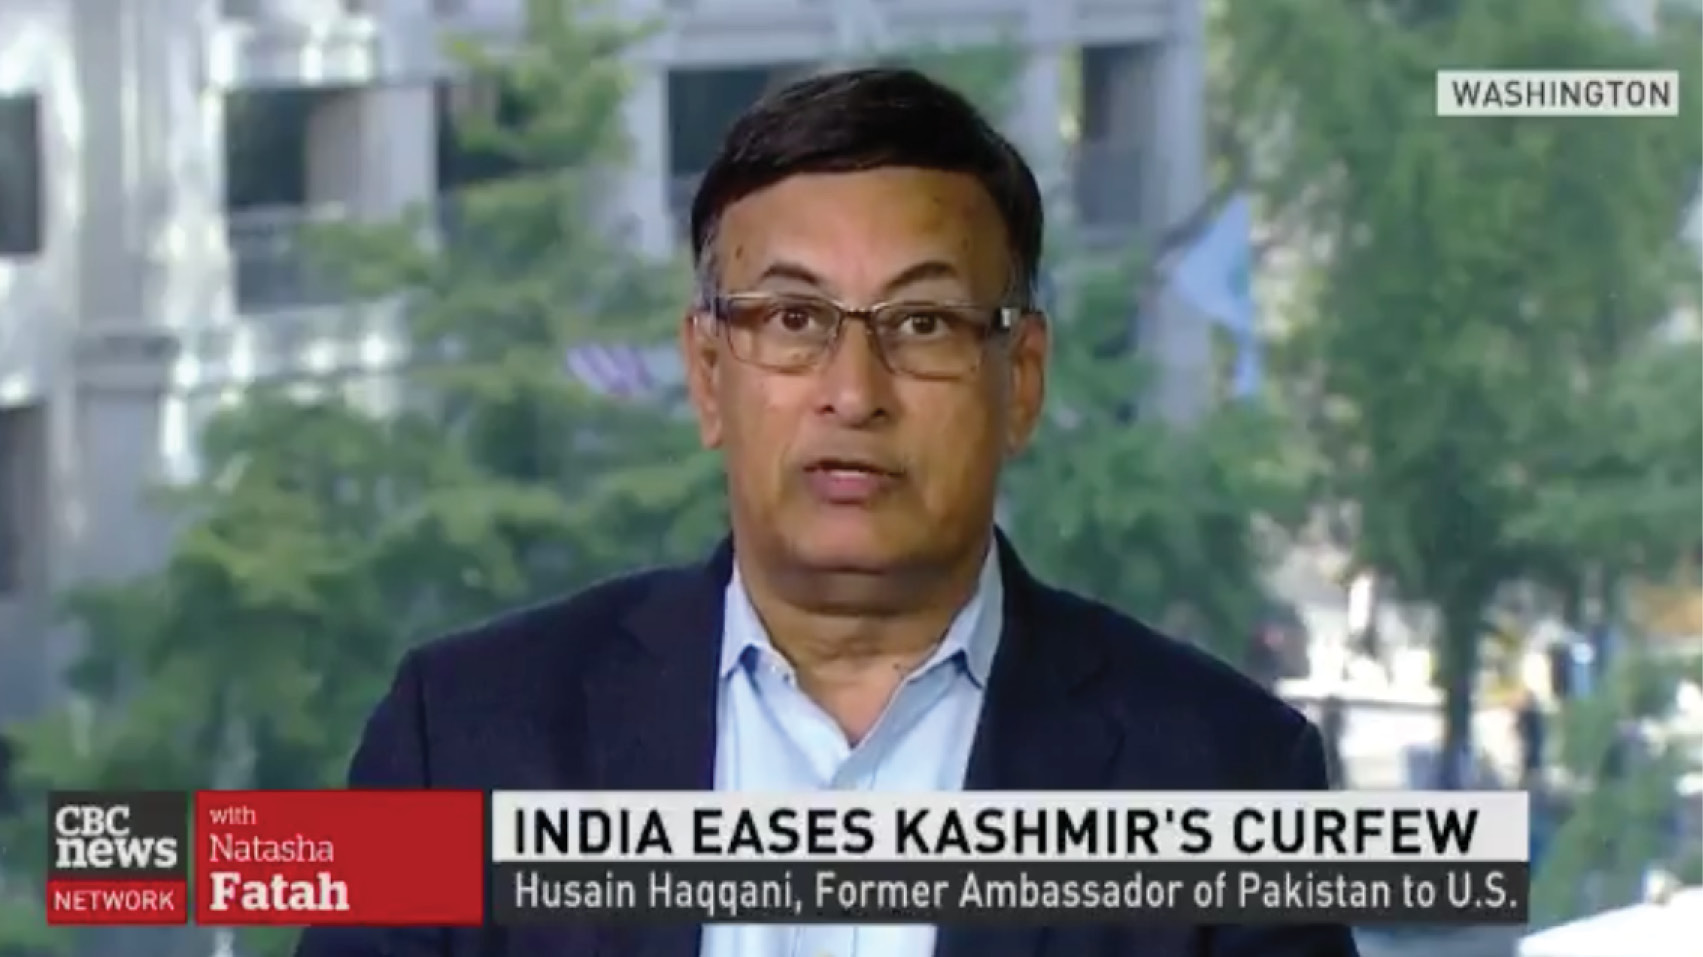 Husain Haqqani discusses Modi's move to revoke Article 370, changing the legal status of Kashmir and taking away their political autonomy.